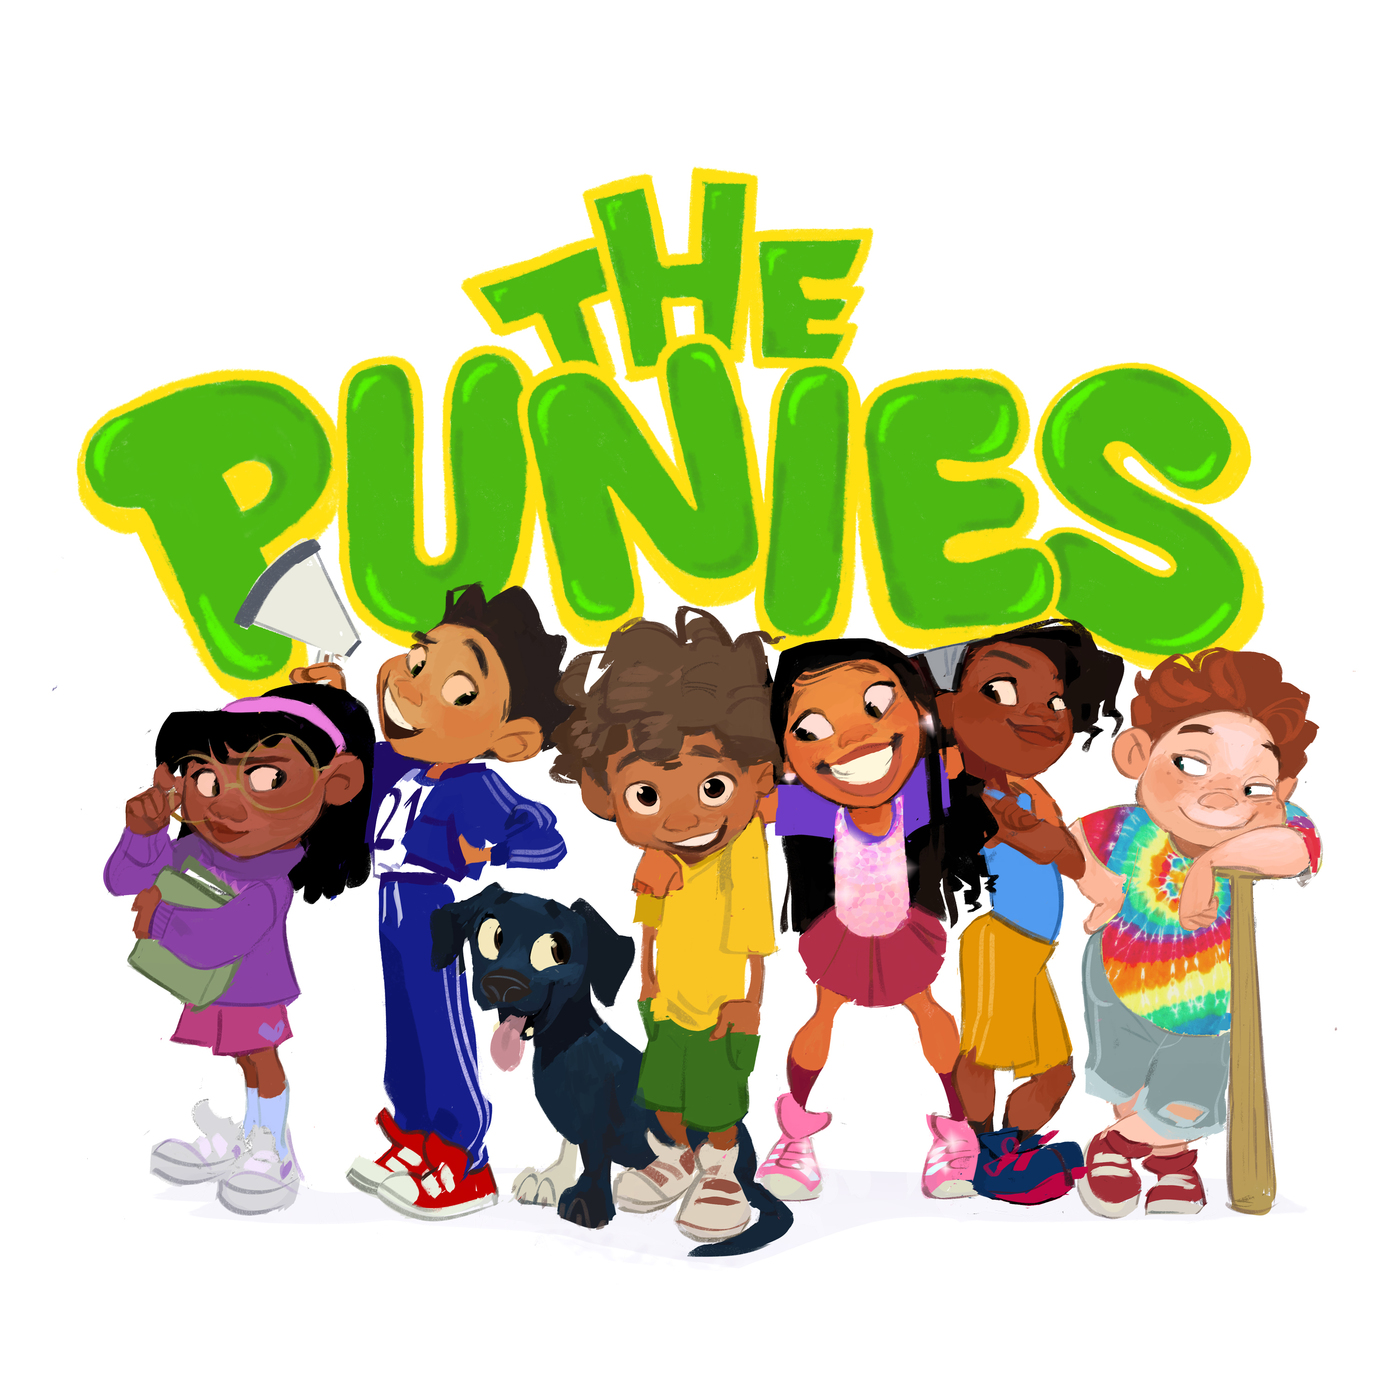 The Punies by Kobe Bryant podcast logo